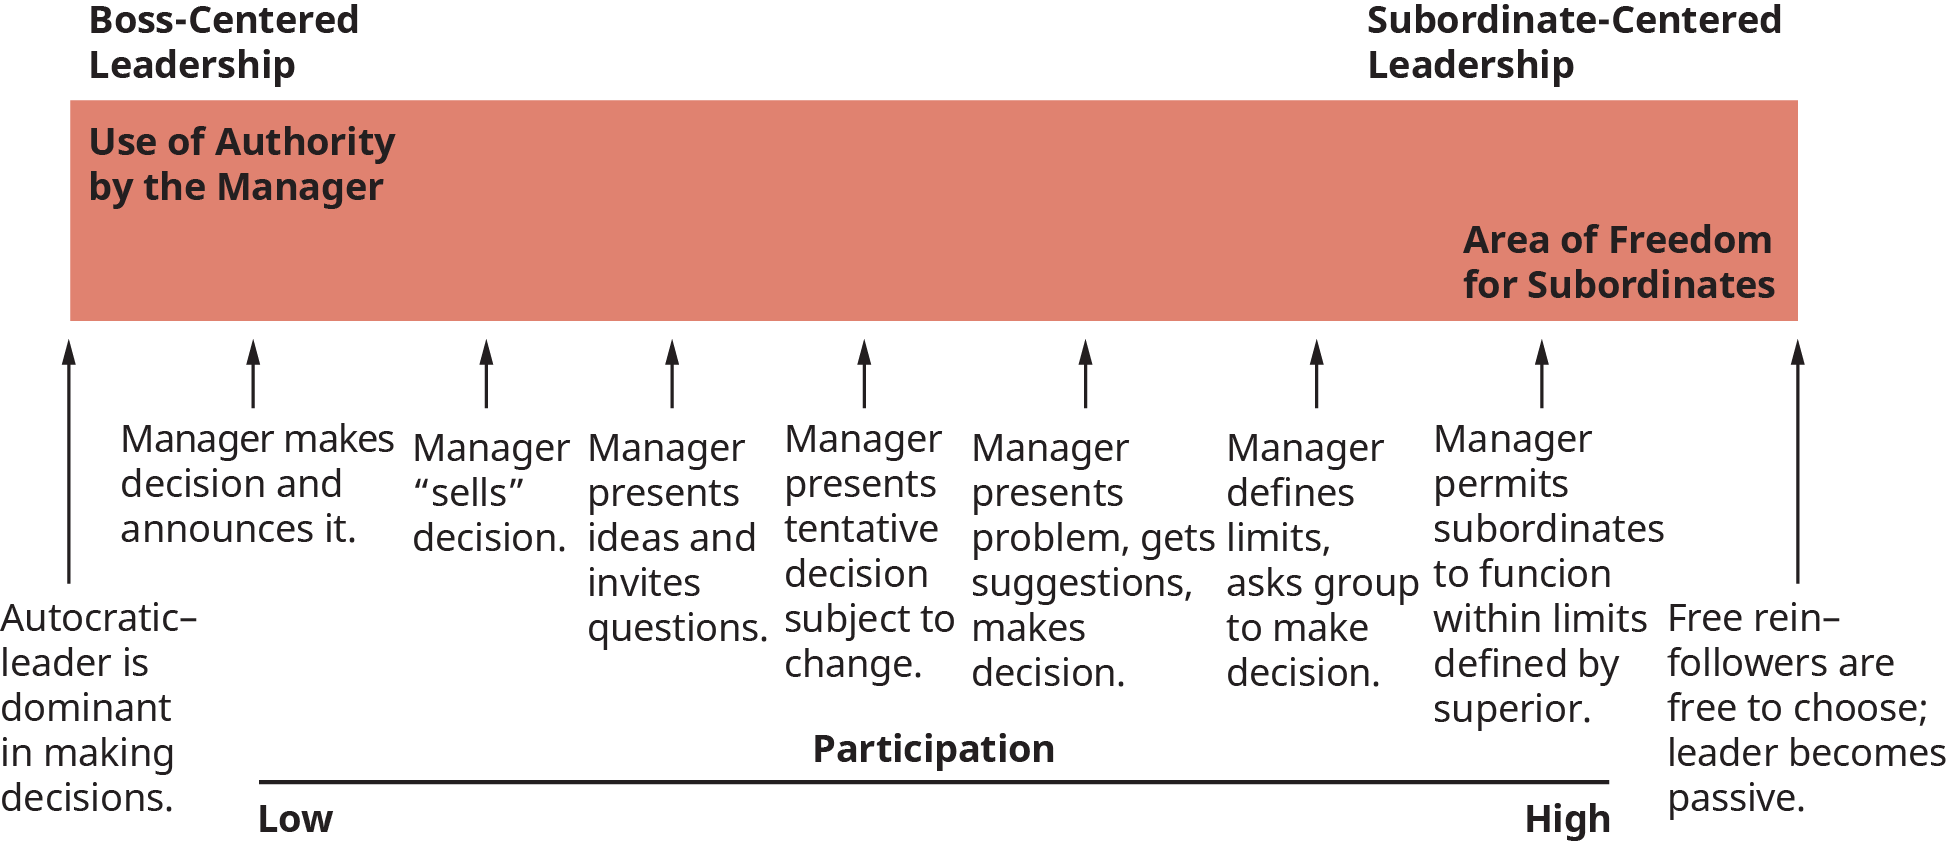 A diagram illustrates the continuum of leadership behavior given by Tannenbaum and Schmidt.